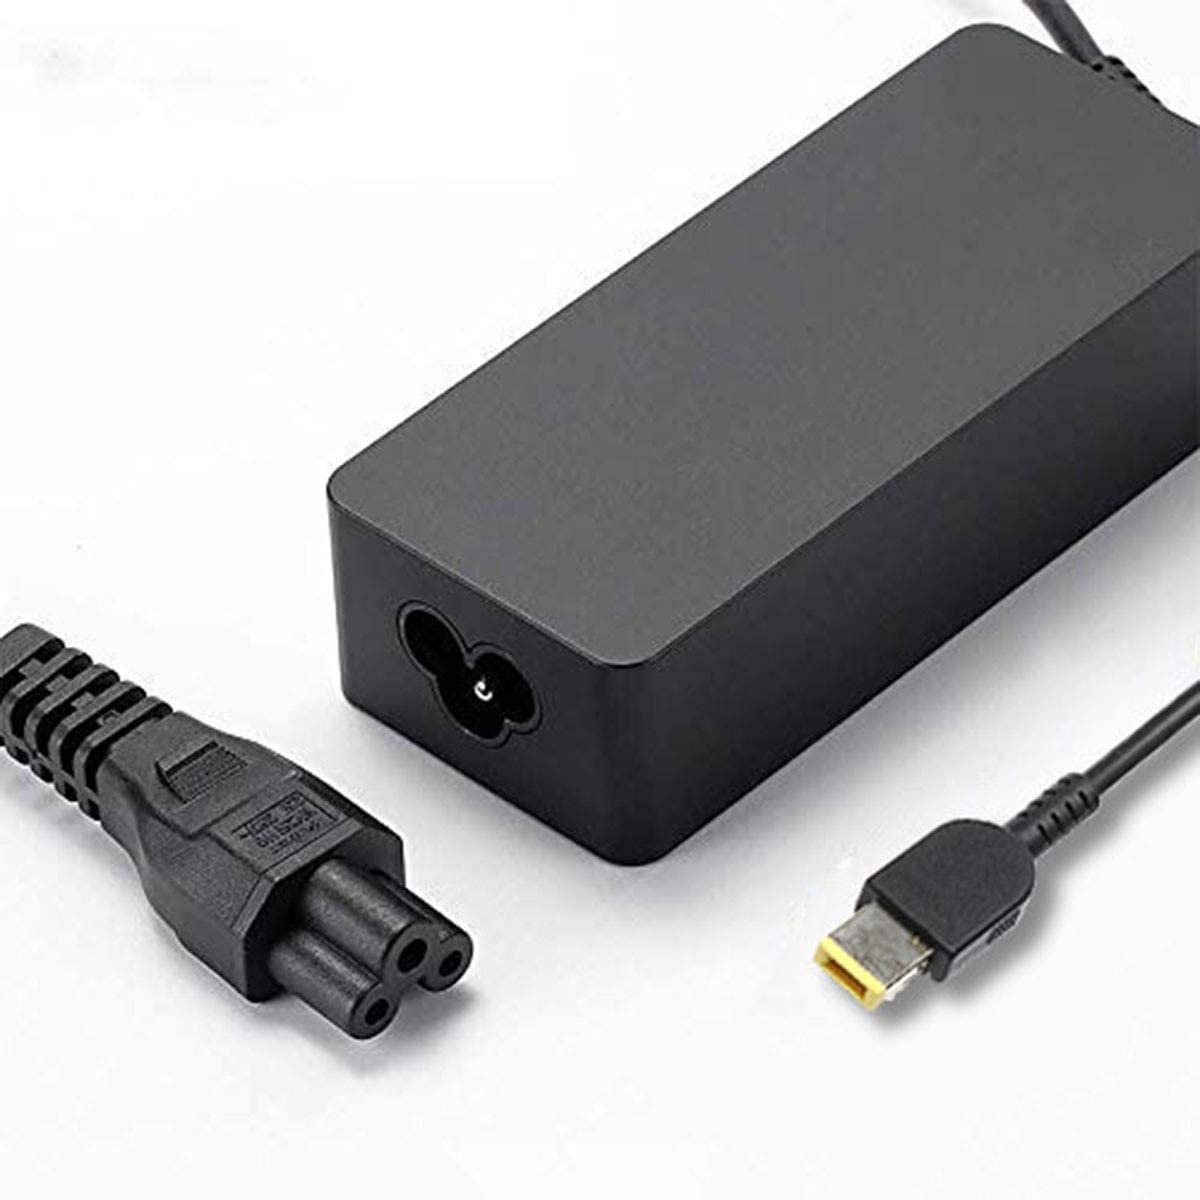 45W USB Tip AC Adapter Laptop Charger Replacement for Lenovo ADLX45NLC3A ADLX45NCC3A ADLX45NCC2A 0b46994 ThinkPad X230s X240s X250 X260 X270 X1 Yoga Ideapad 300S 500S Flex 3 AC Adapter Power Supply